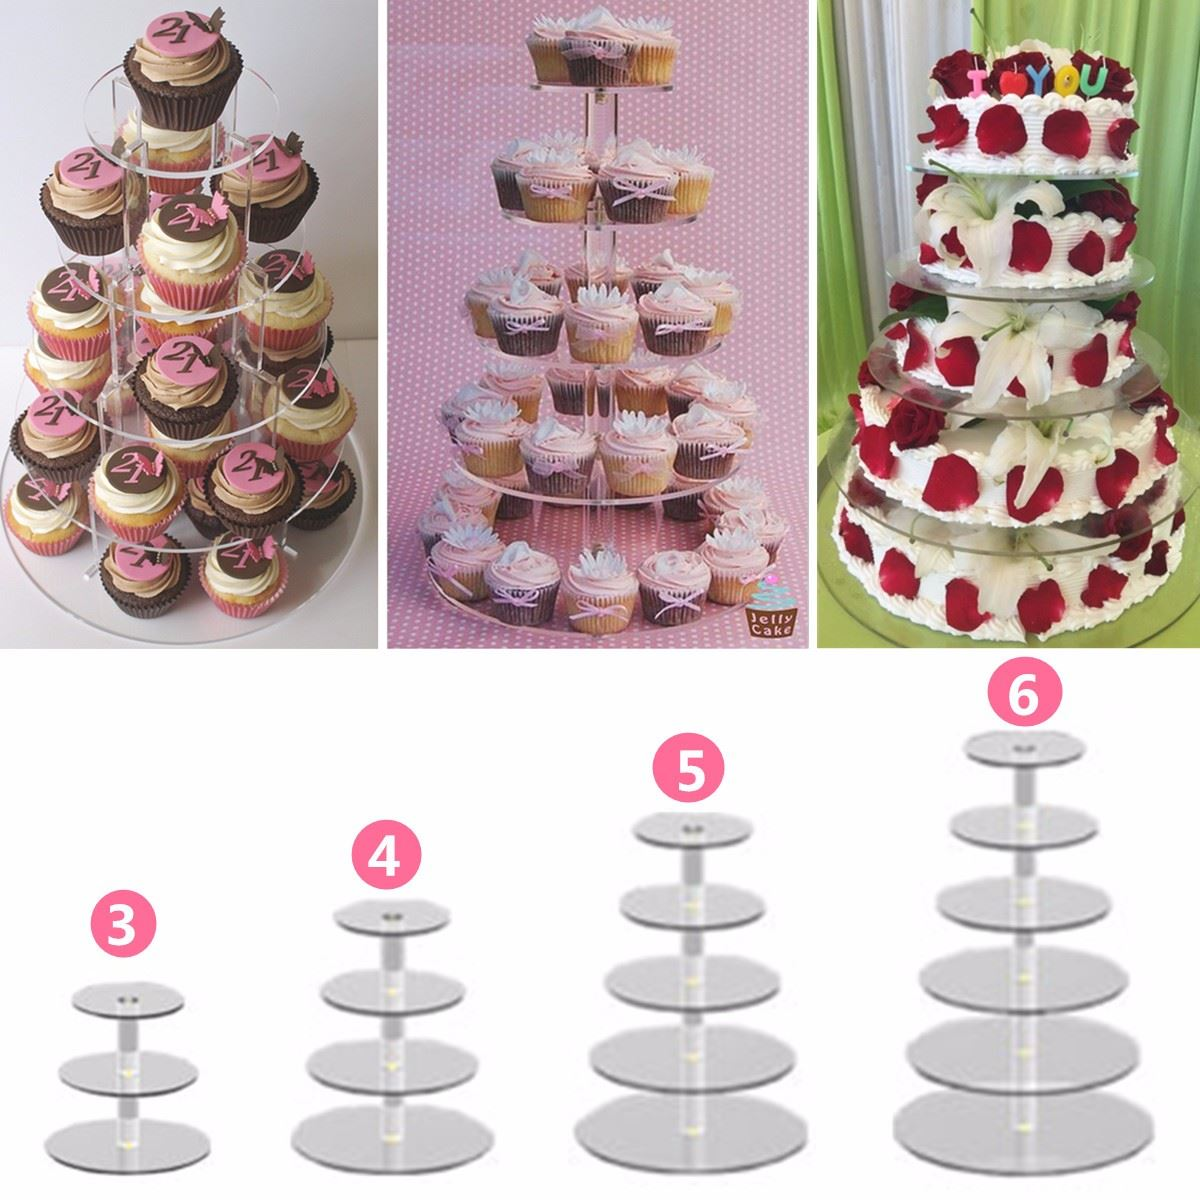 Transparent Acrylic Cake Stand Round Cup Cupcake Holder Wedding Birthday Party Events Dessert Display Stand 3/4/5/6 Tiers(China (Mainland))